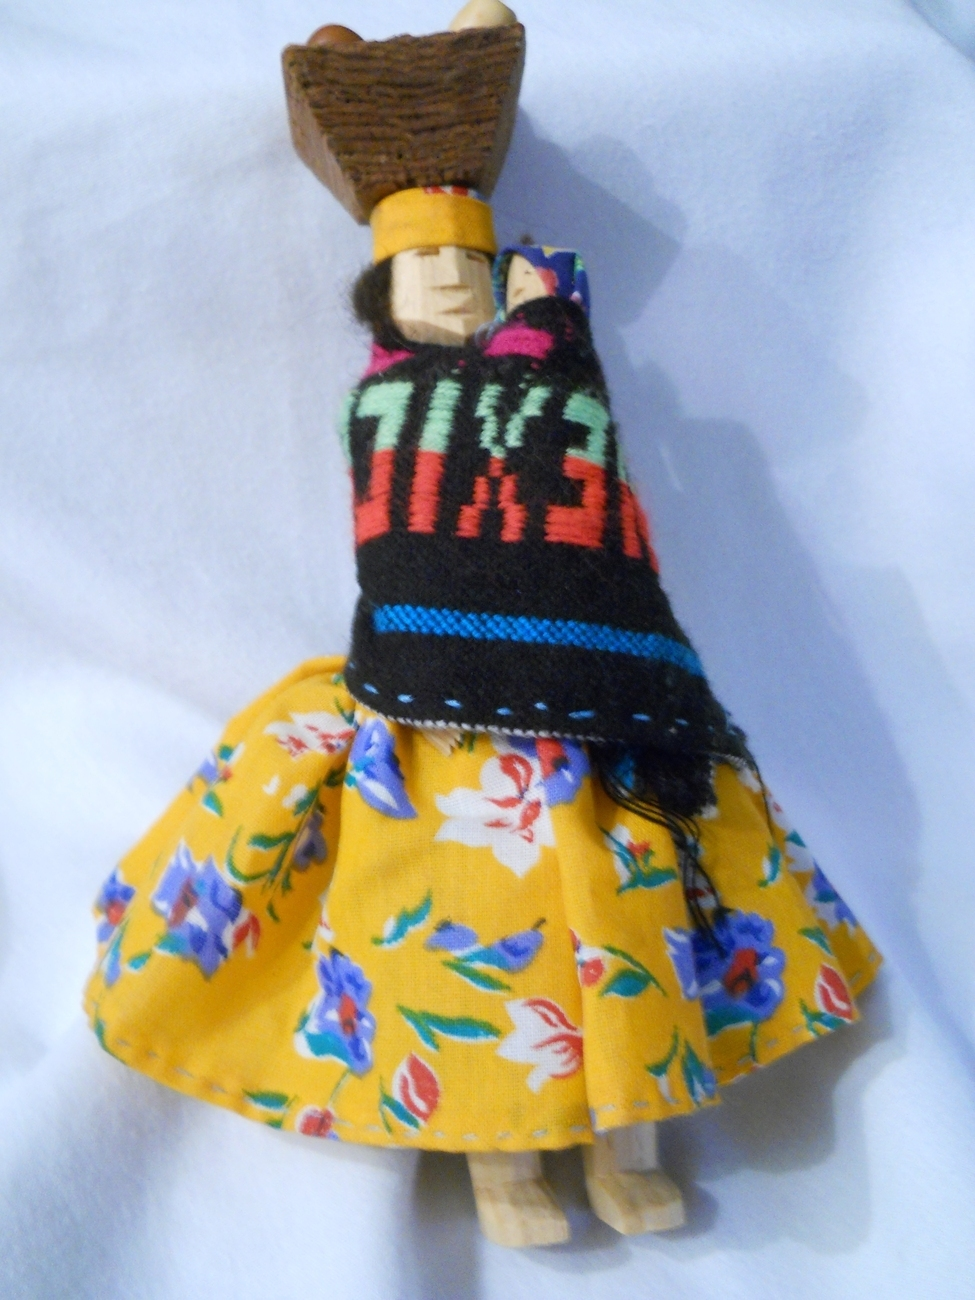 MEXICAN DOLL ~ MOTHER AND BABE ~ HANDMADE BY TARAHUMARA INDIANS IN COPPER CANYON